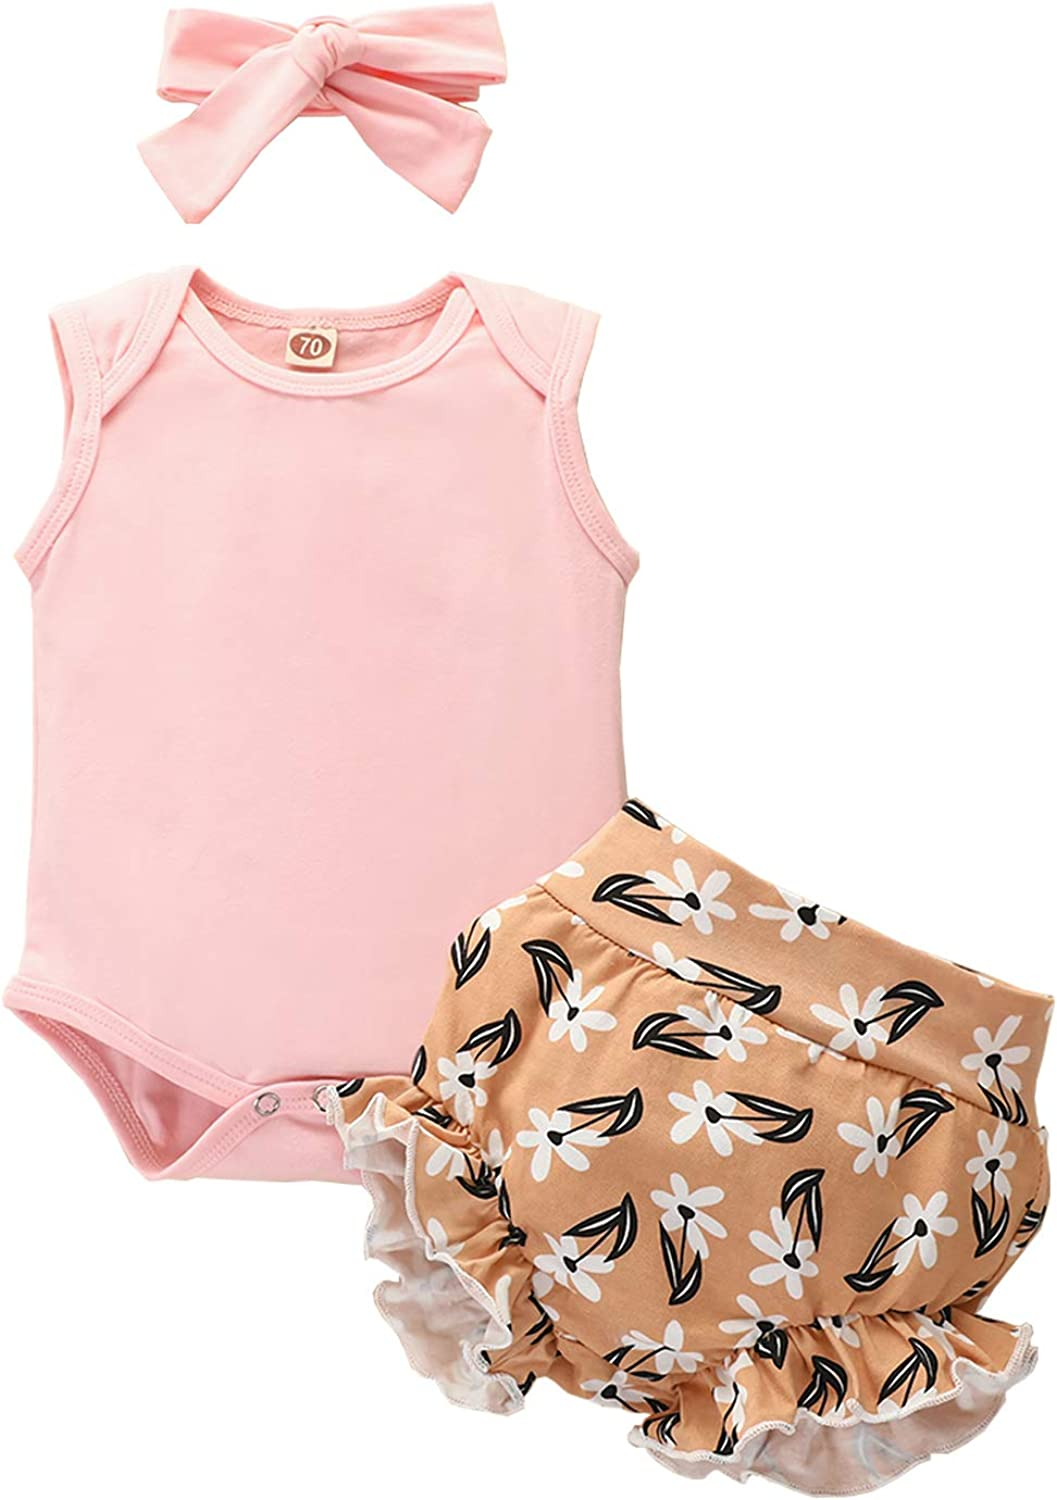 Jacksonville Mall All stores are sold SEVEN YOUNG Newborn Baby Girls Romper+ Clothes Sleeveless Summer